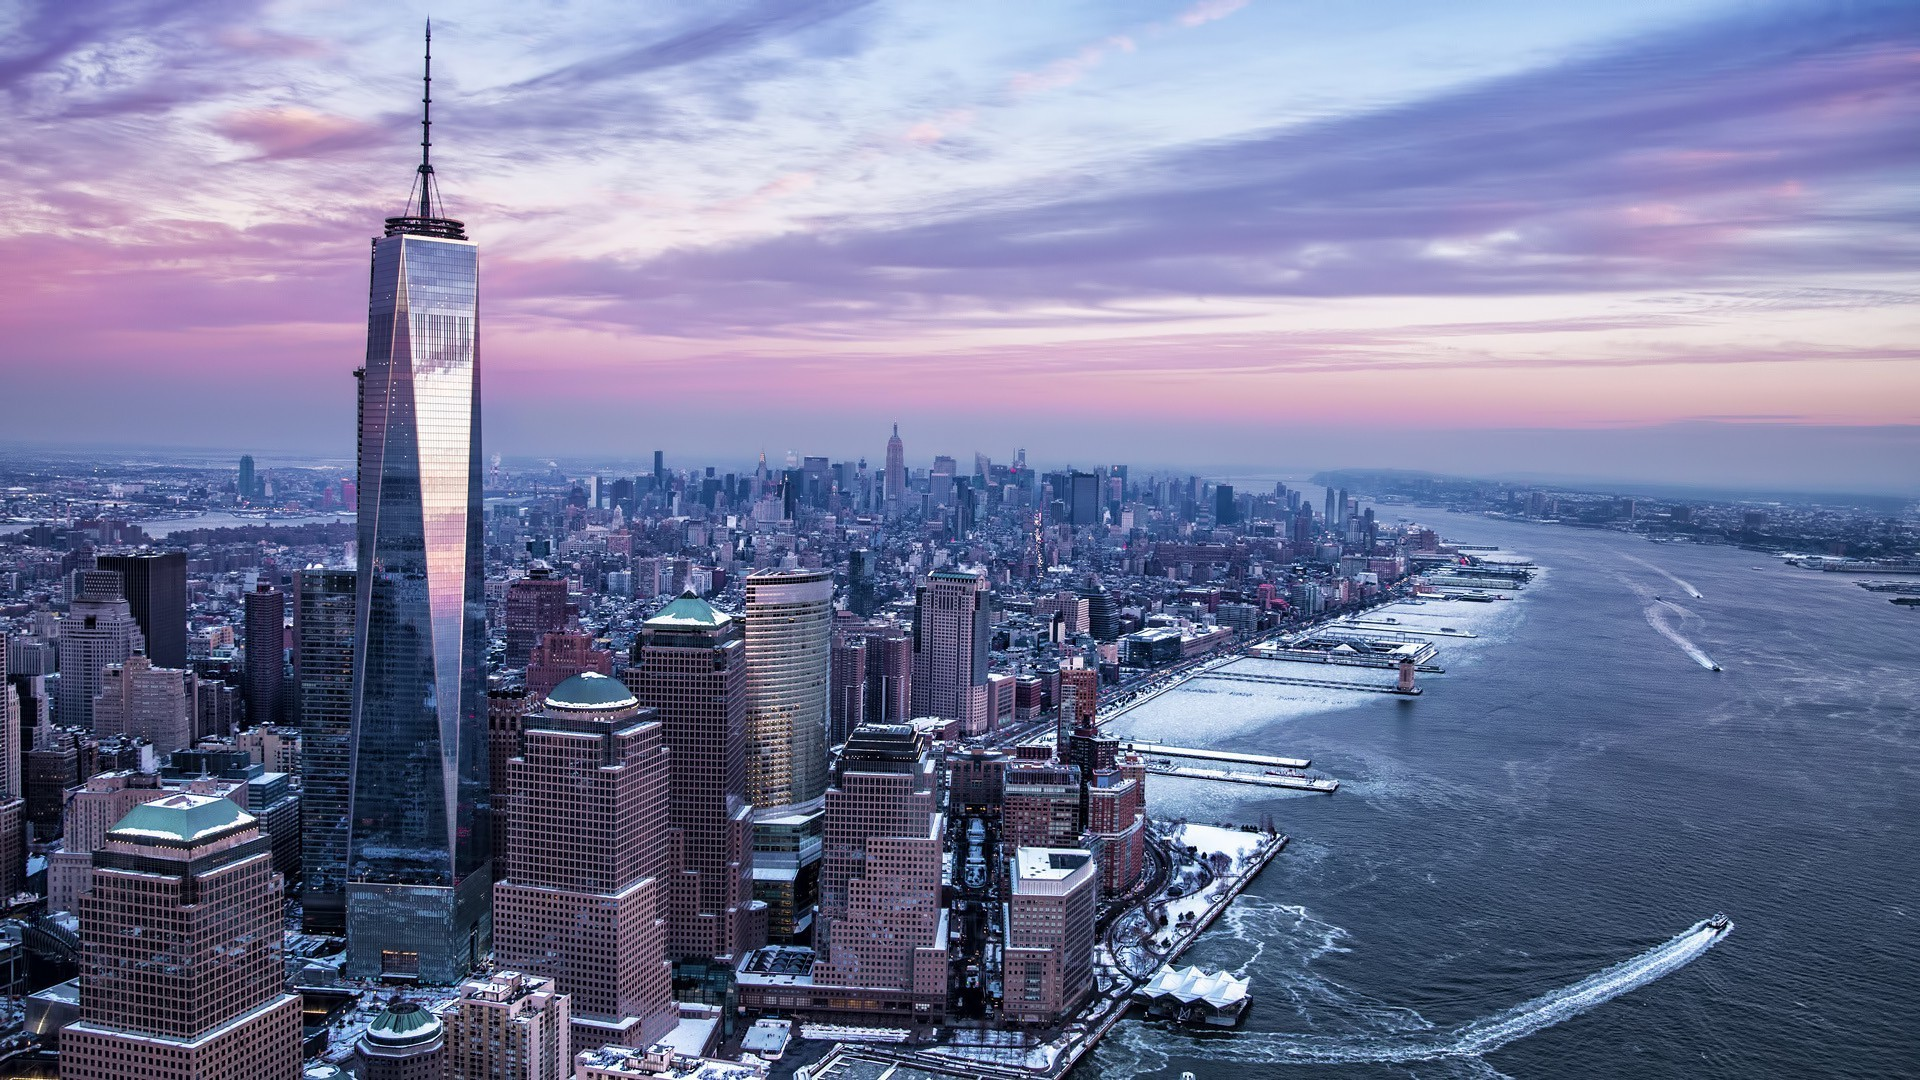 New York City, City, USA, Freedom Tower, Manhattan, Hudson River, Winter,  River, One World Trade Center Wallpapers HD / Desktop and Mobile Backgrounds